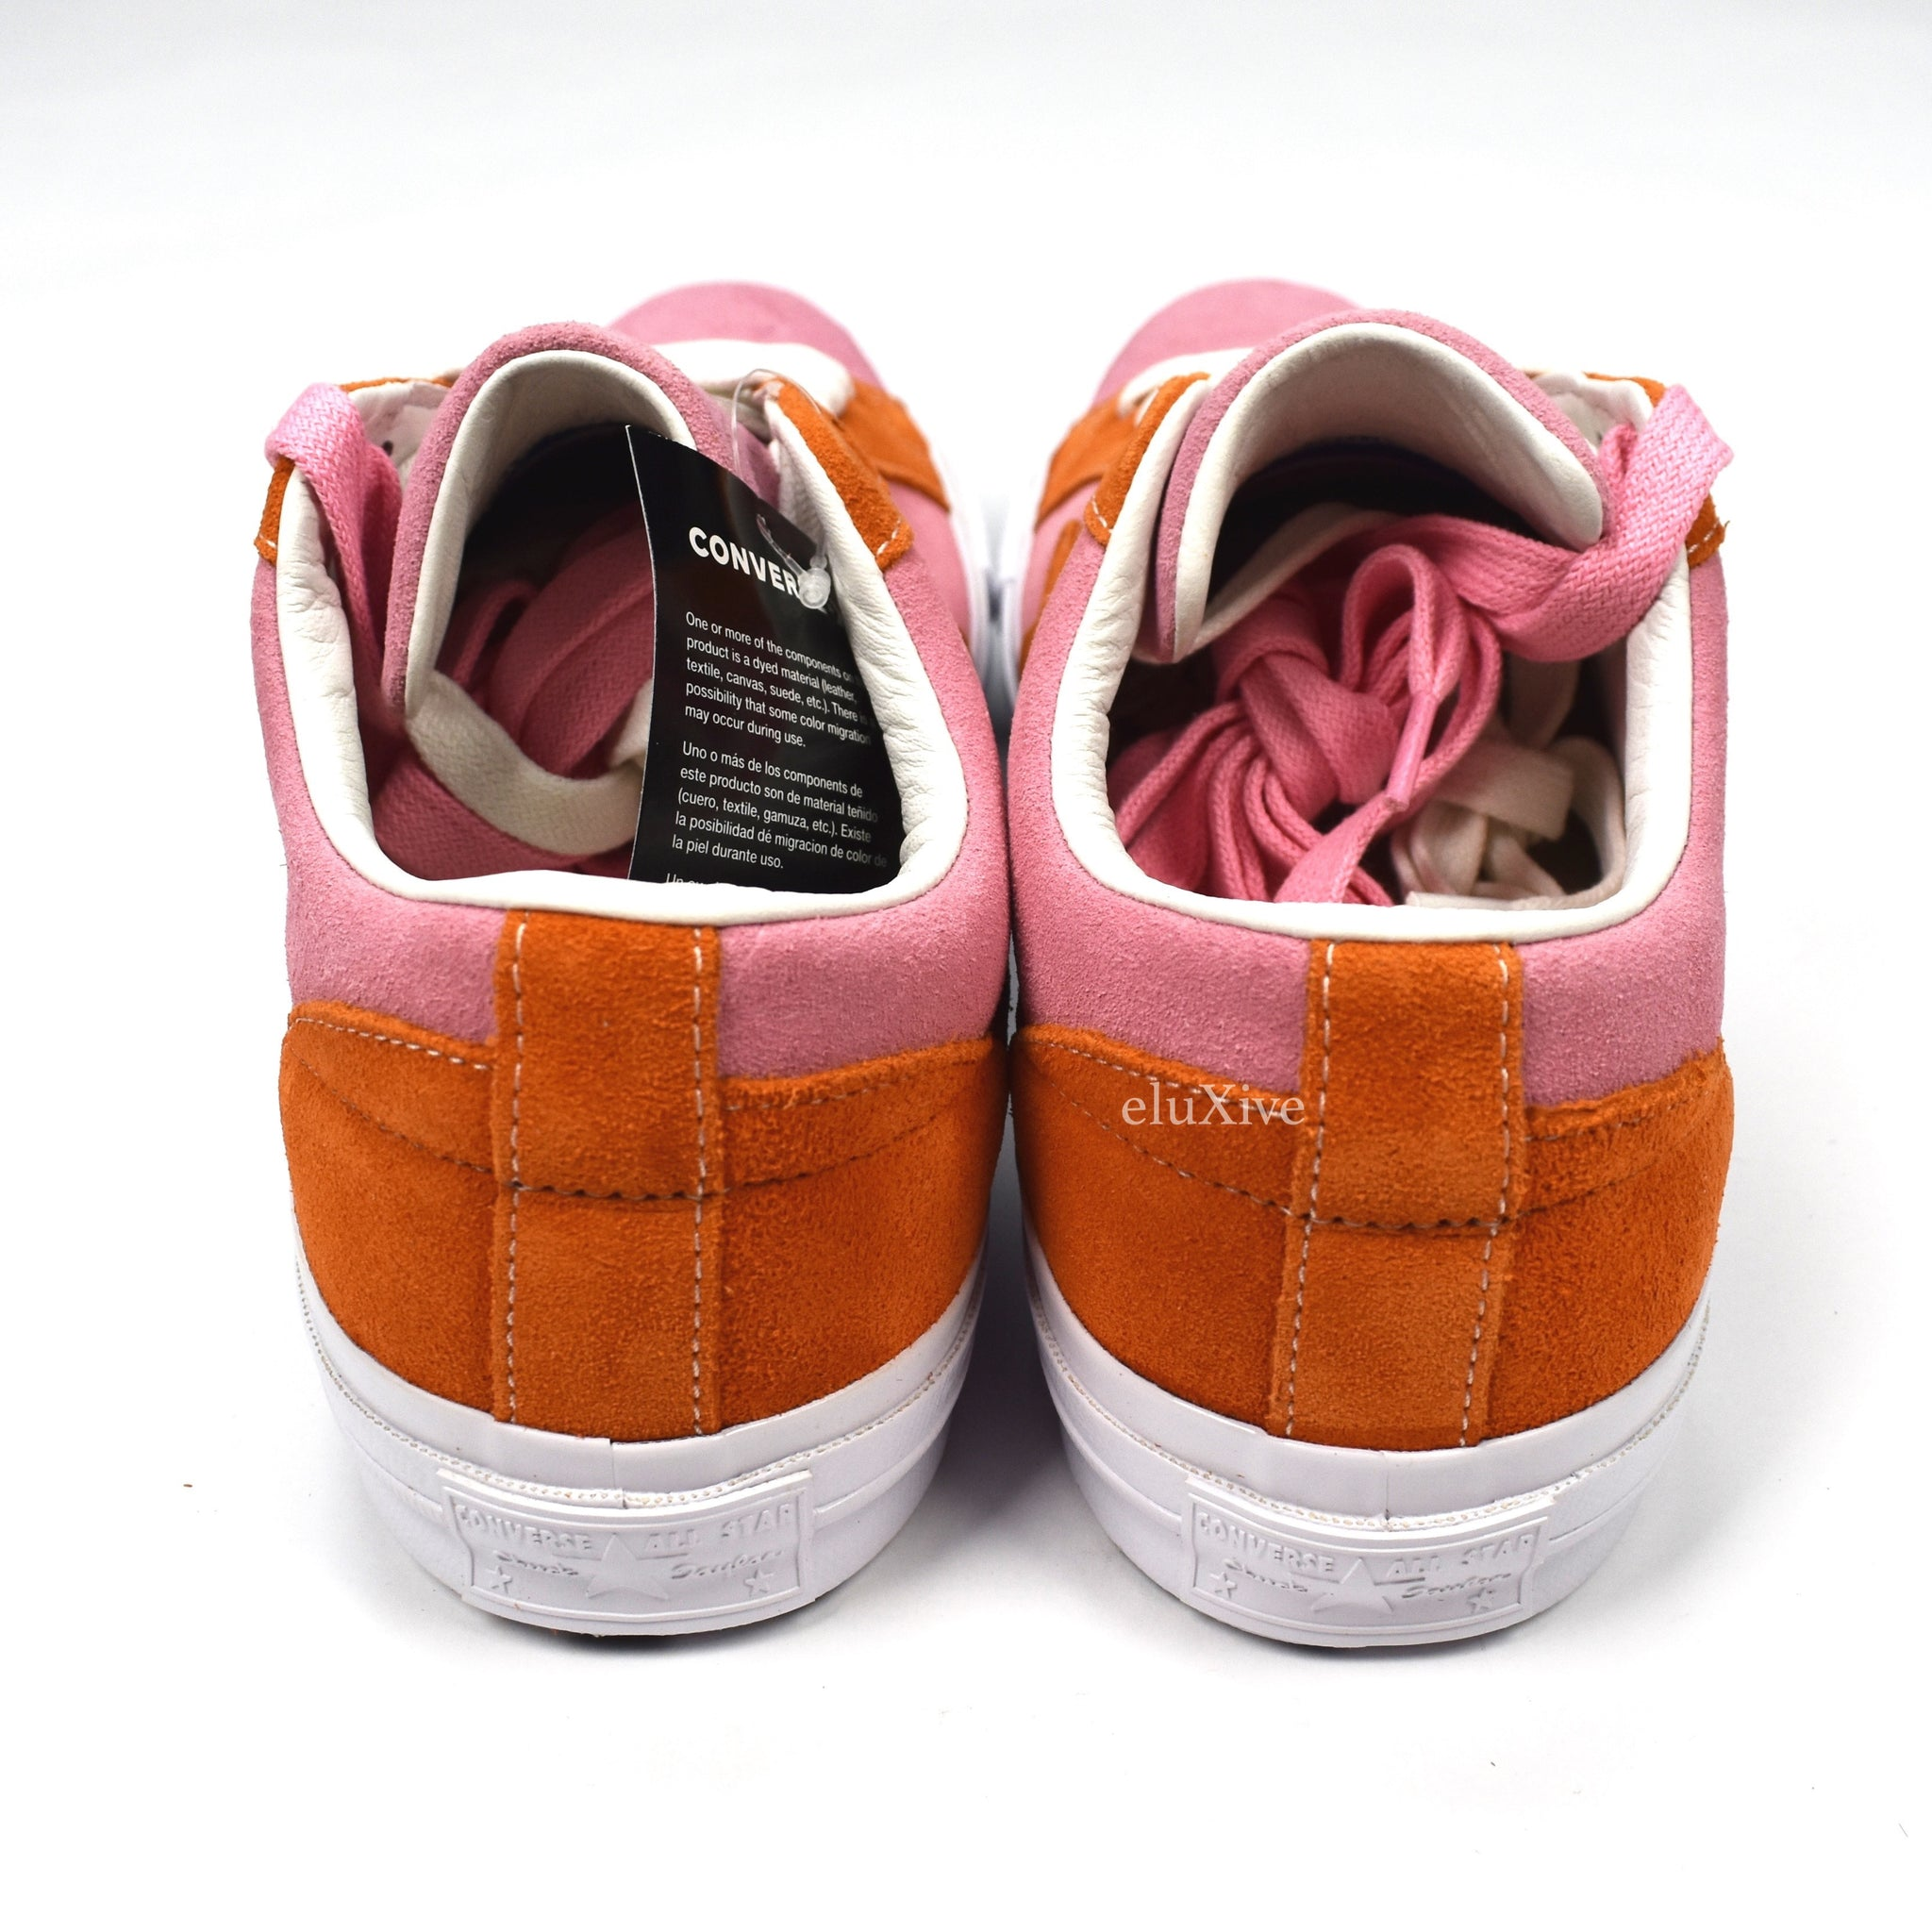 Converse - Golf Le Fleur Sneakers (Pink/Orange)